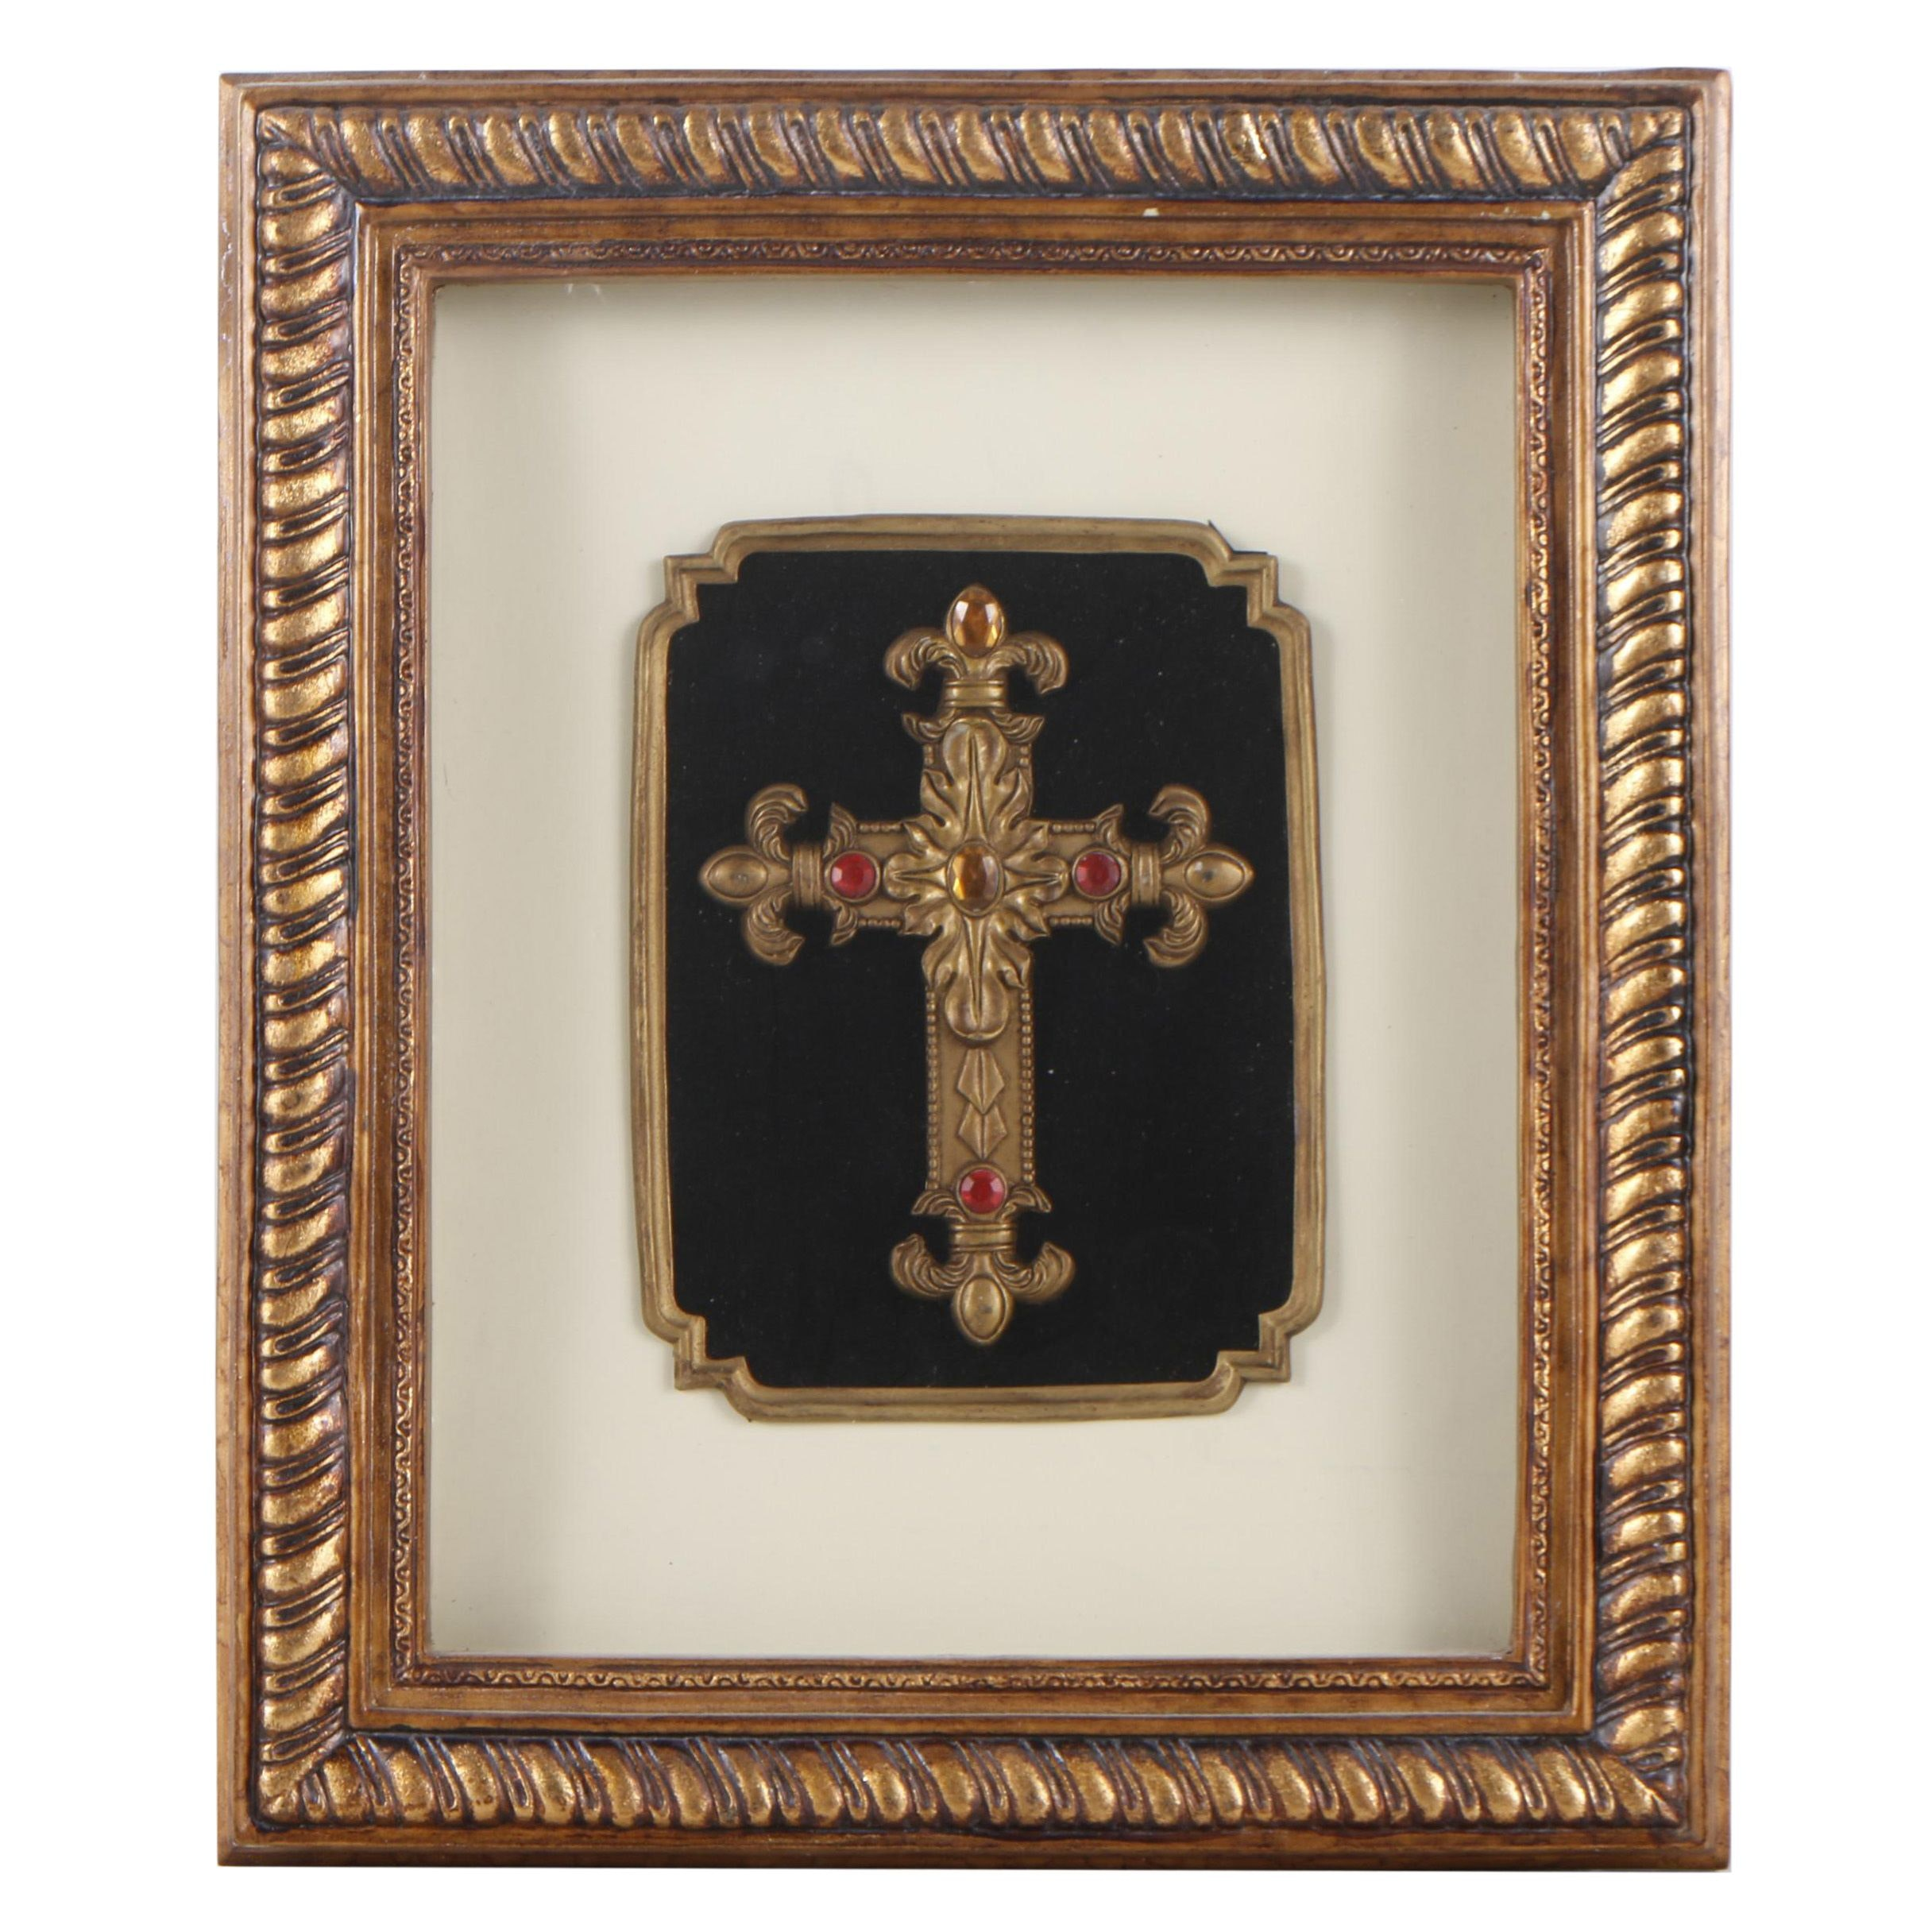 Framed Fleur-de-Lis Cross with Faceted Plastic Stone Embellishments